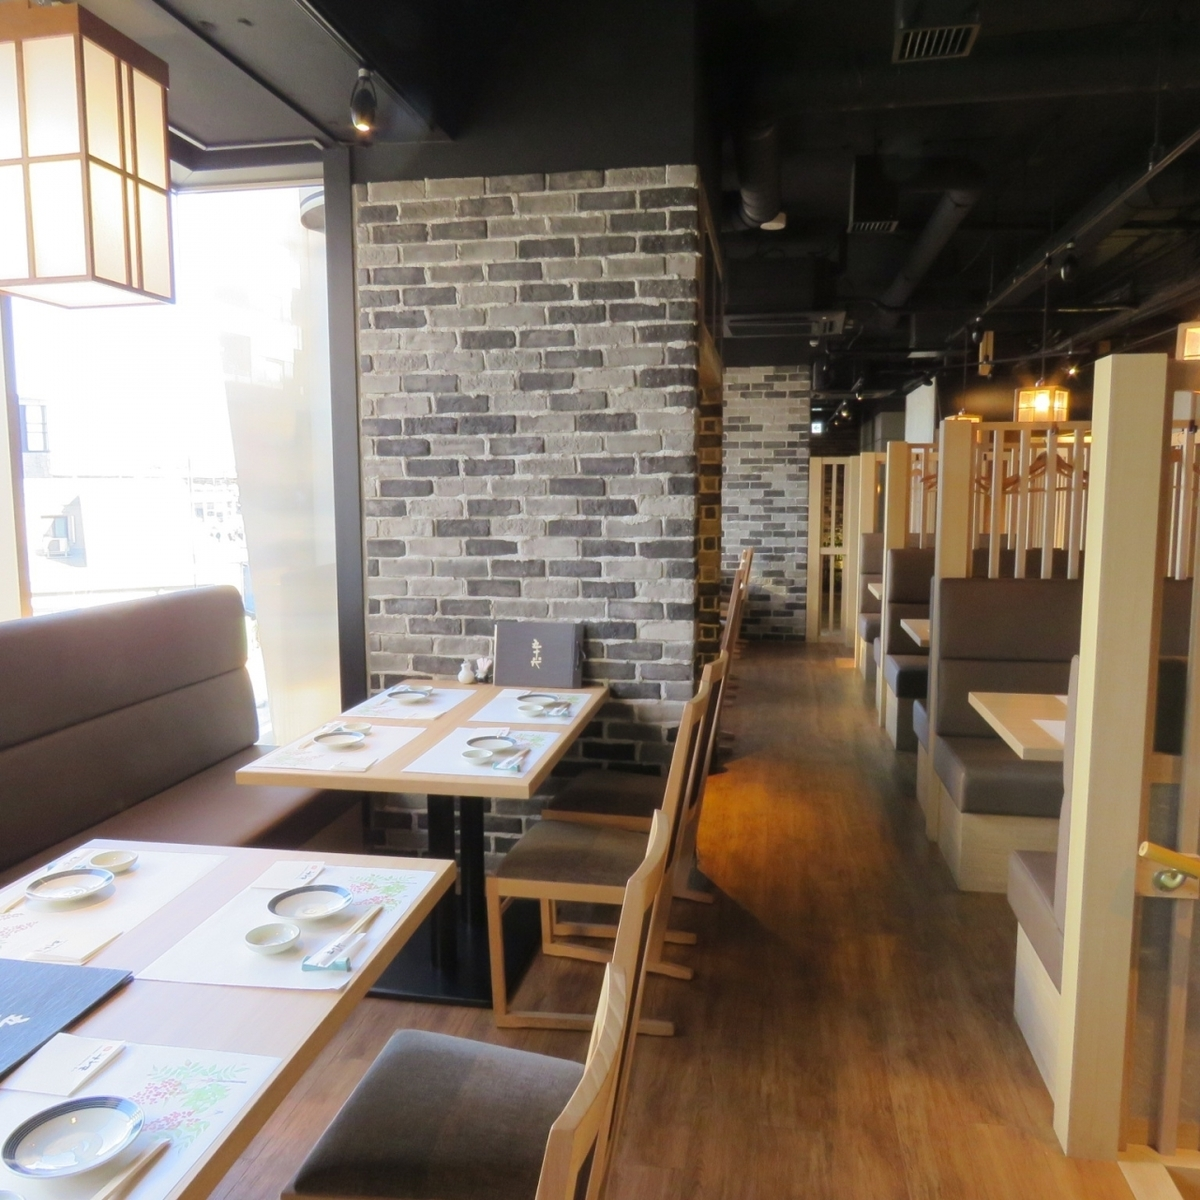 There are three table seats for 4-seat box type sofa and four table tables for windows side sofa.The table feeling the warmth of grids and wooden grid, you can feel the harmony of Japanese ♪